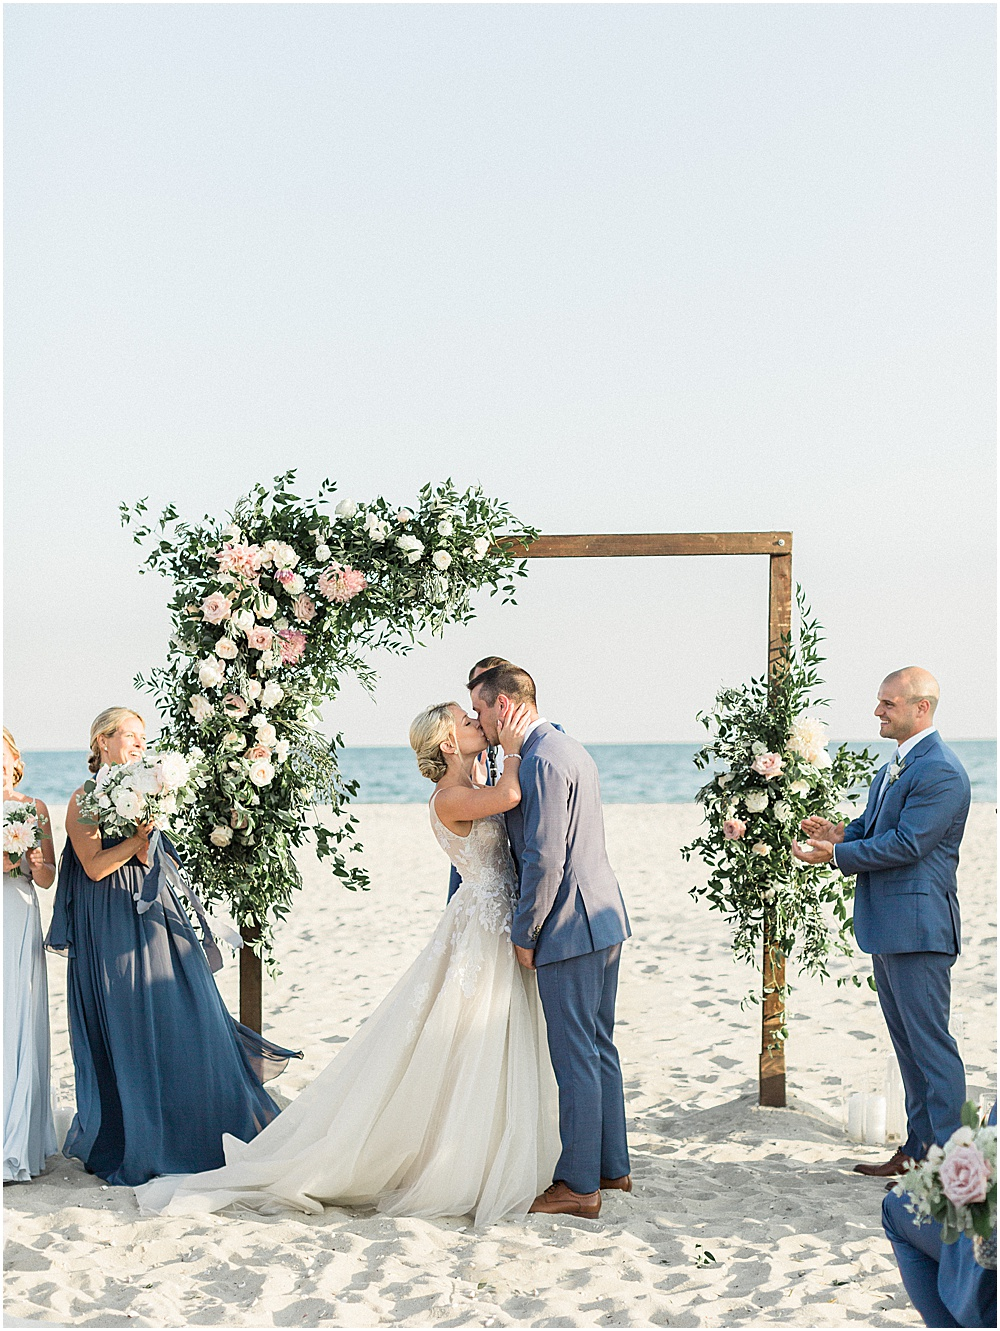 wychmere_beach_club_emily_kevin_beach_plum_floral_french_blue_cape_cod_harwichport_massachusetts_boston_wedding_photographer_meredith_jane_photography_photo_0550.jpg